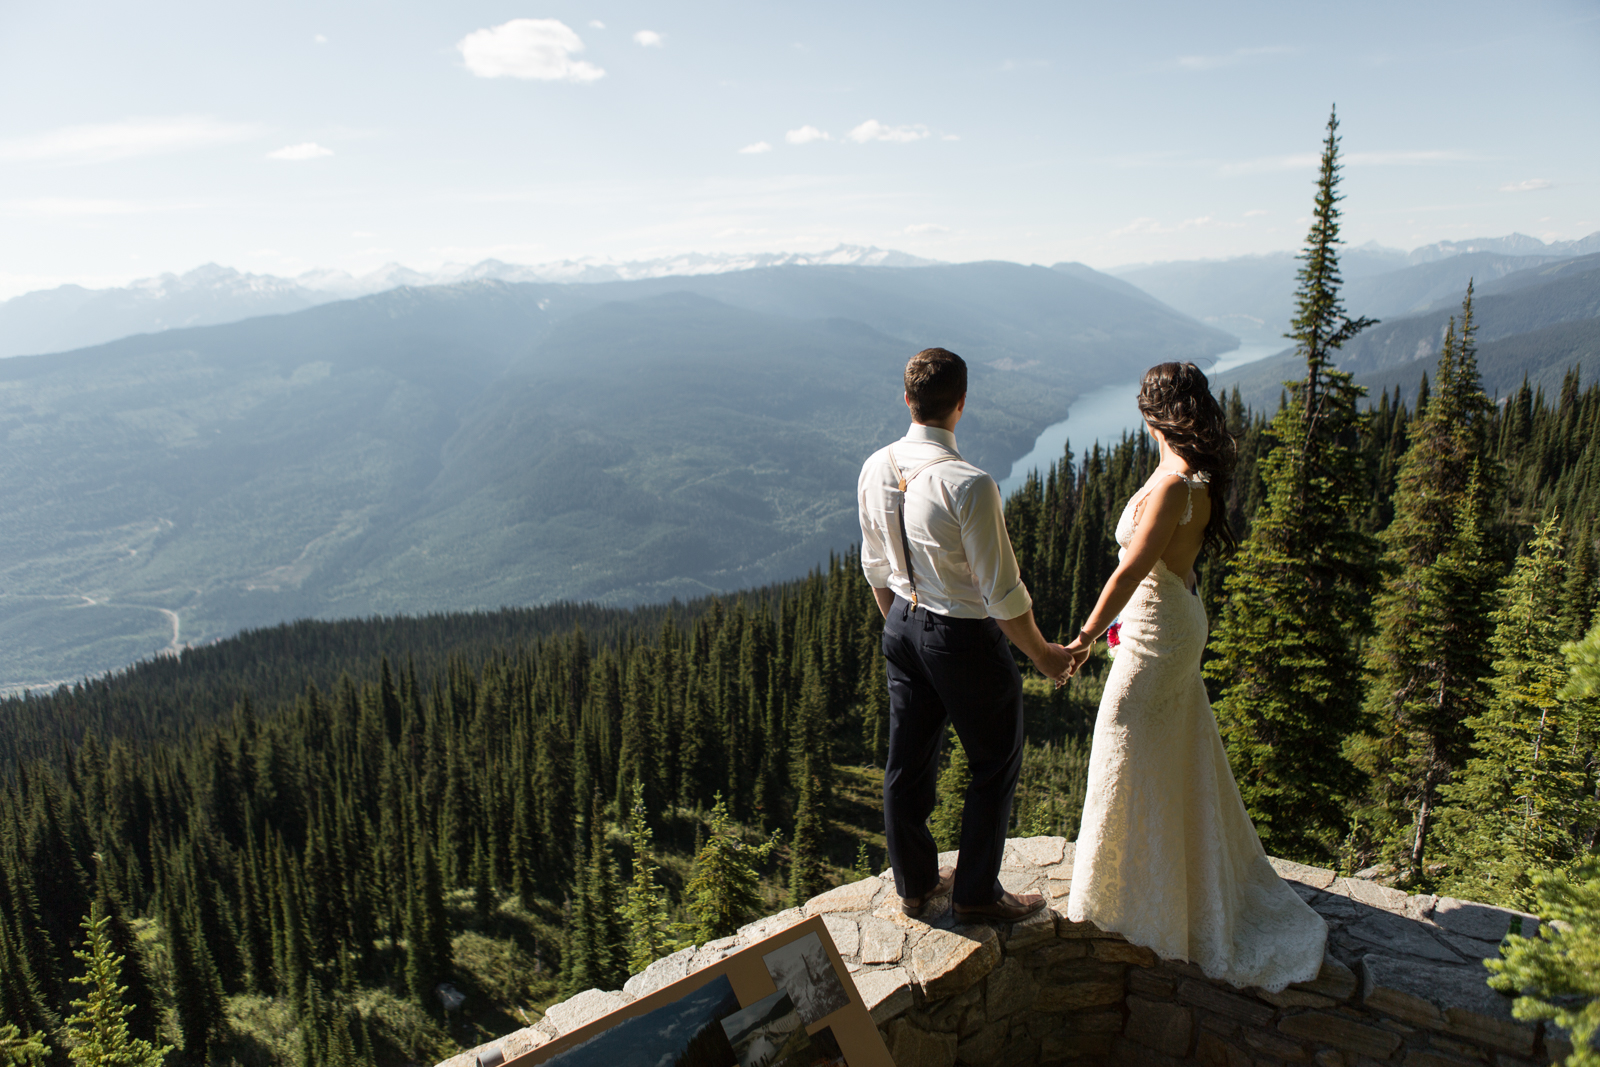 56Andrew_Pavlidis_Photography_Jess_and_Tristan_Revelstoke_Elopement_Calgary_Wedding_Photographer-8751